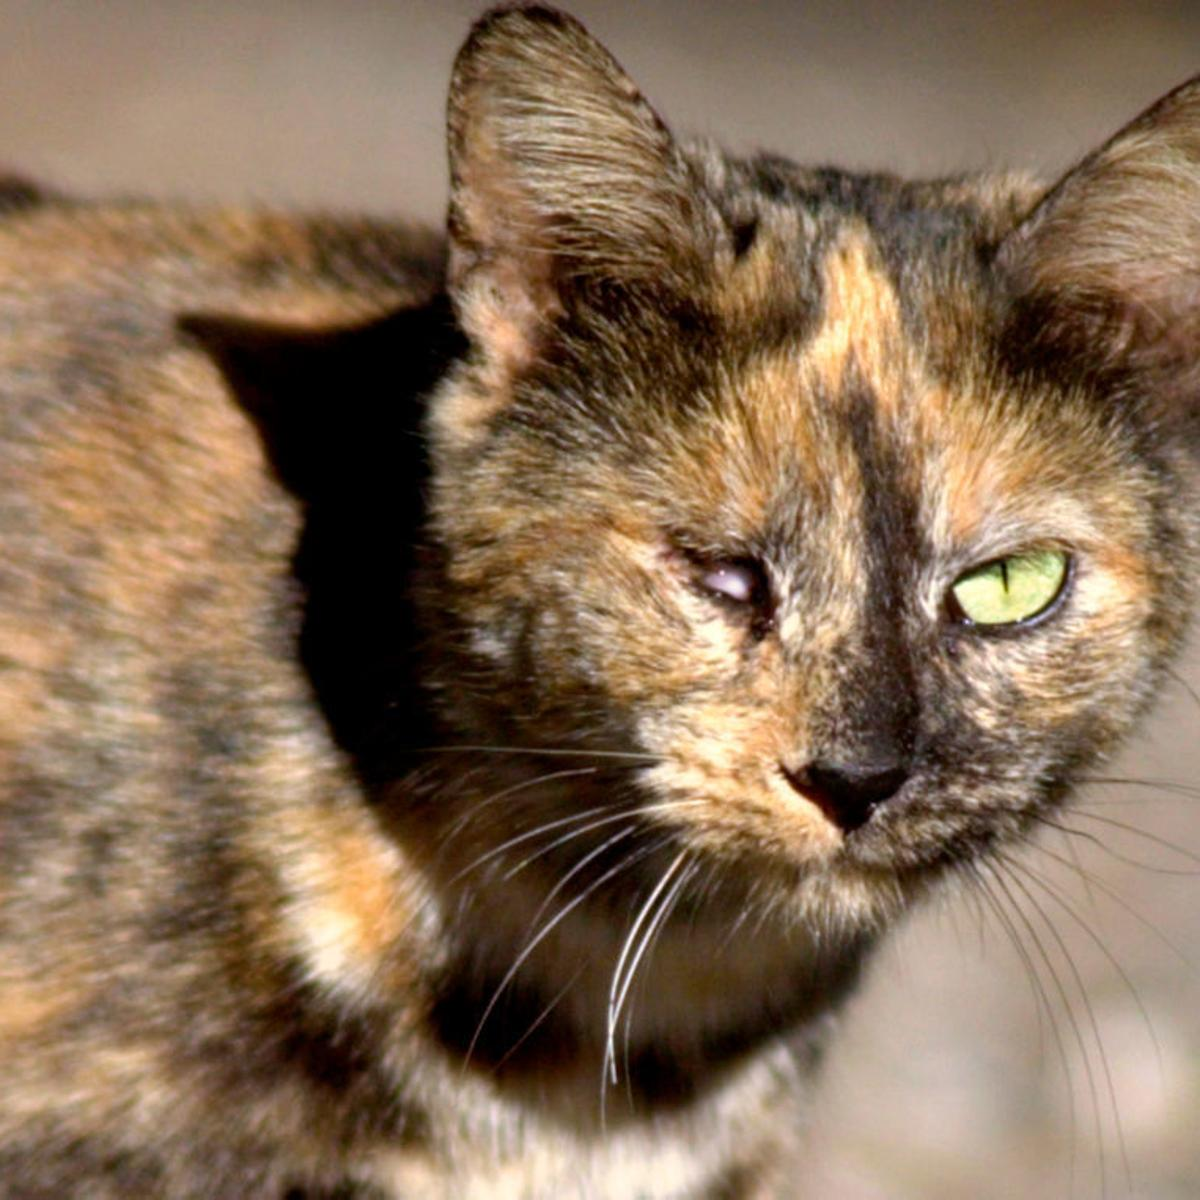 15 reasons science says feral cats are a disaster | Archive | nola com